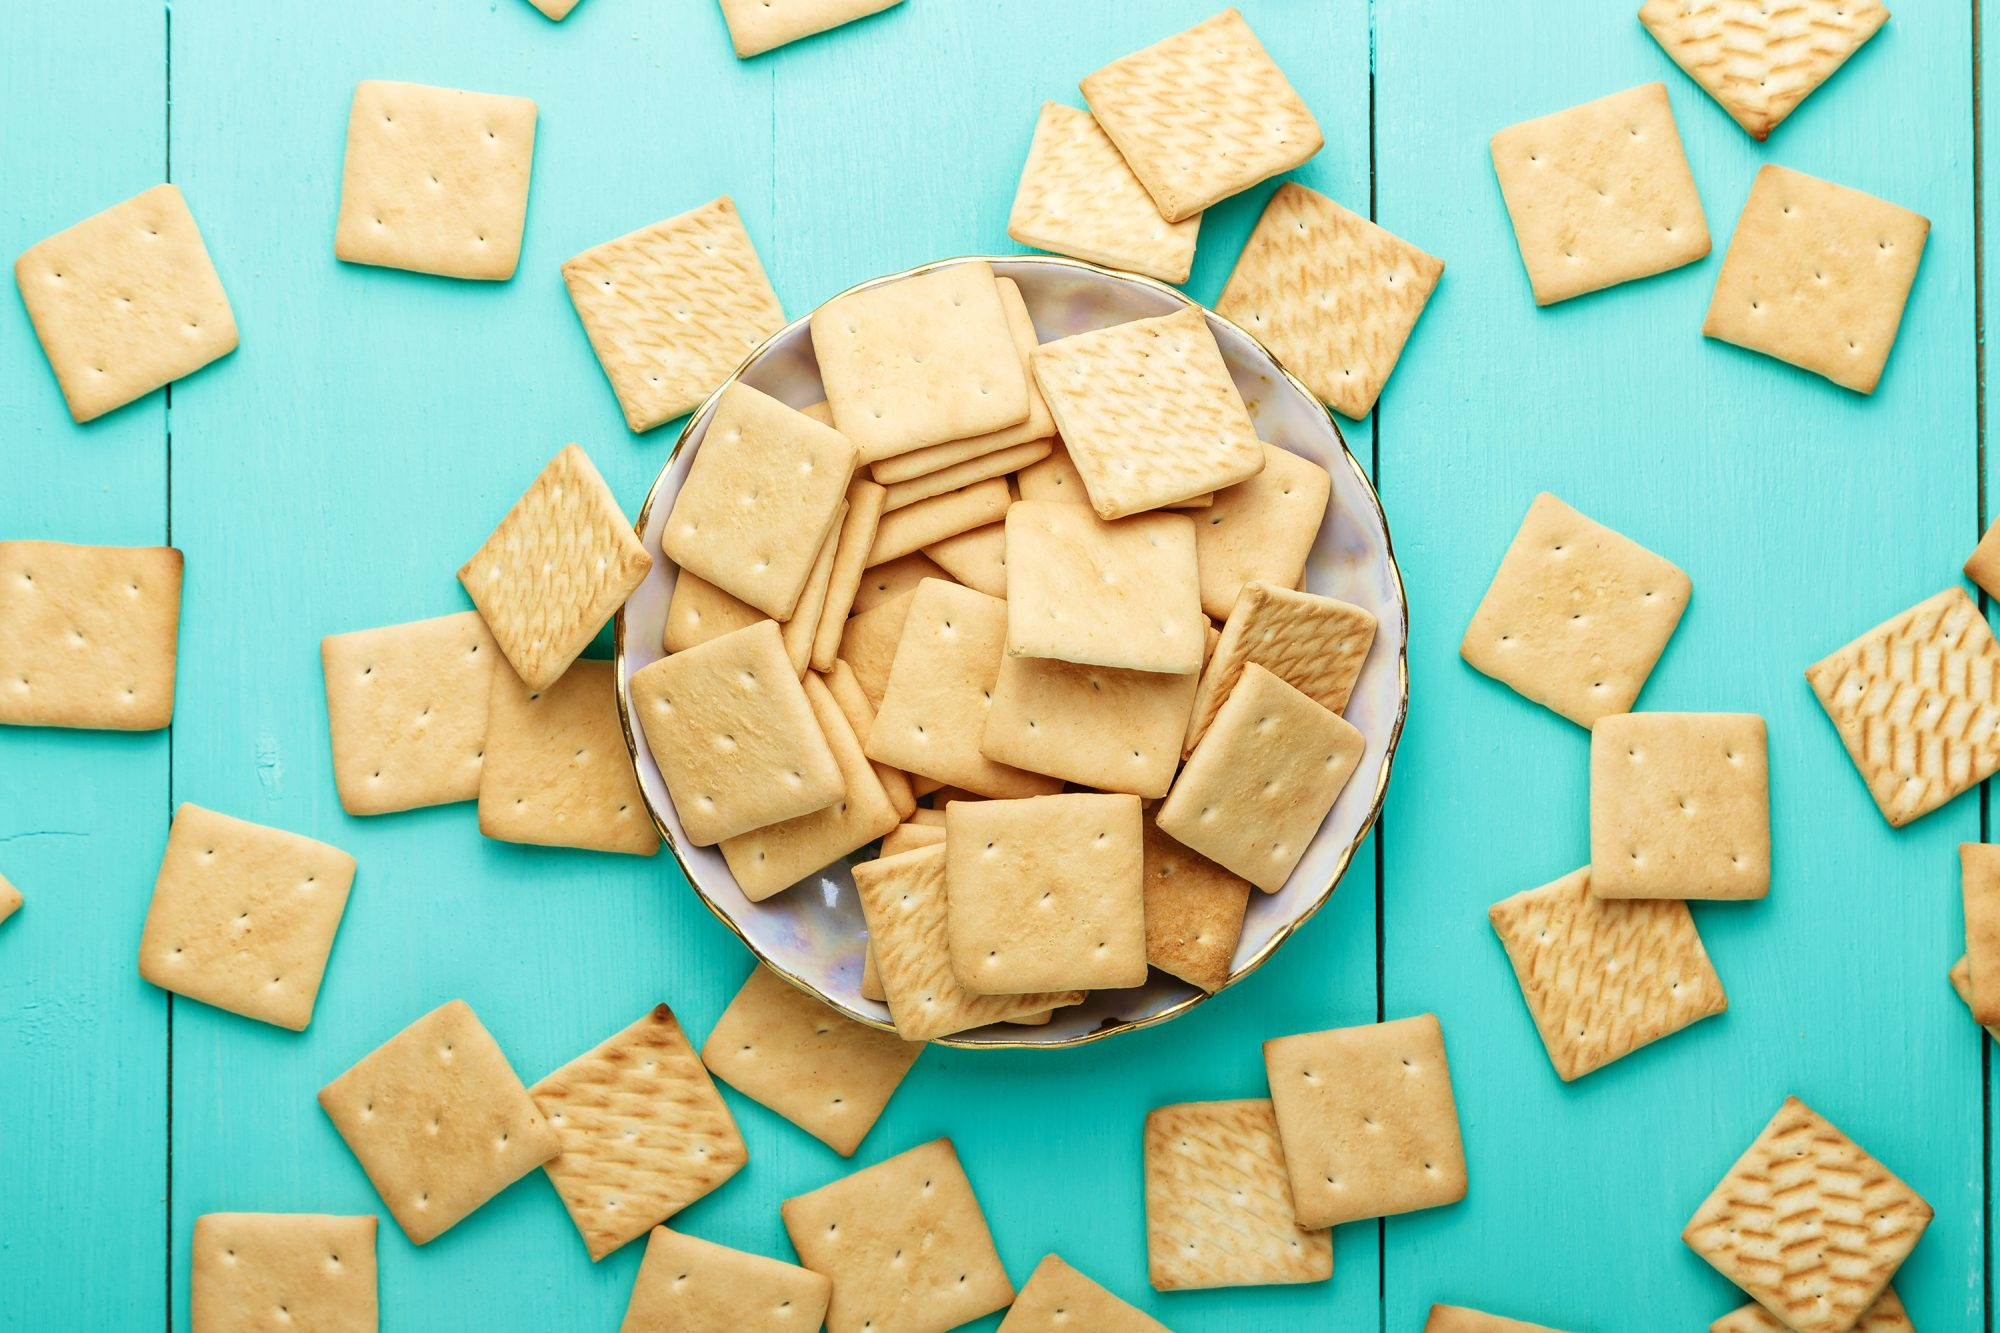 serving-size-portion-size: crackers in a bowl